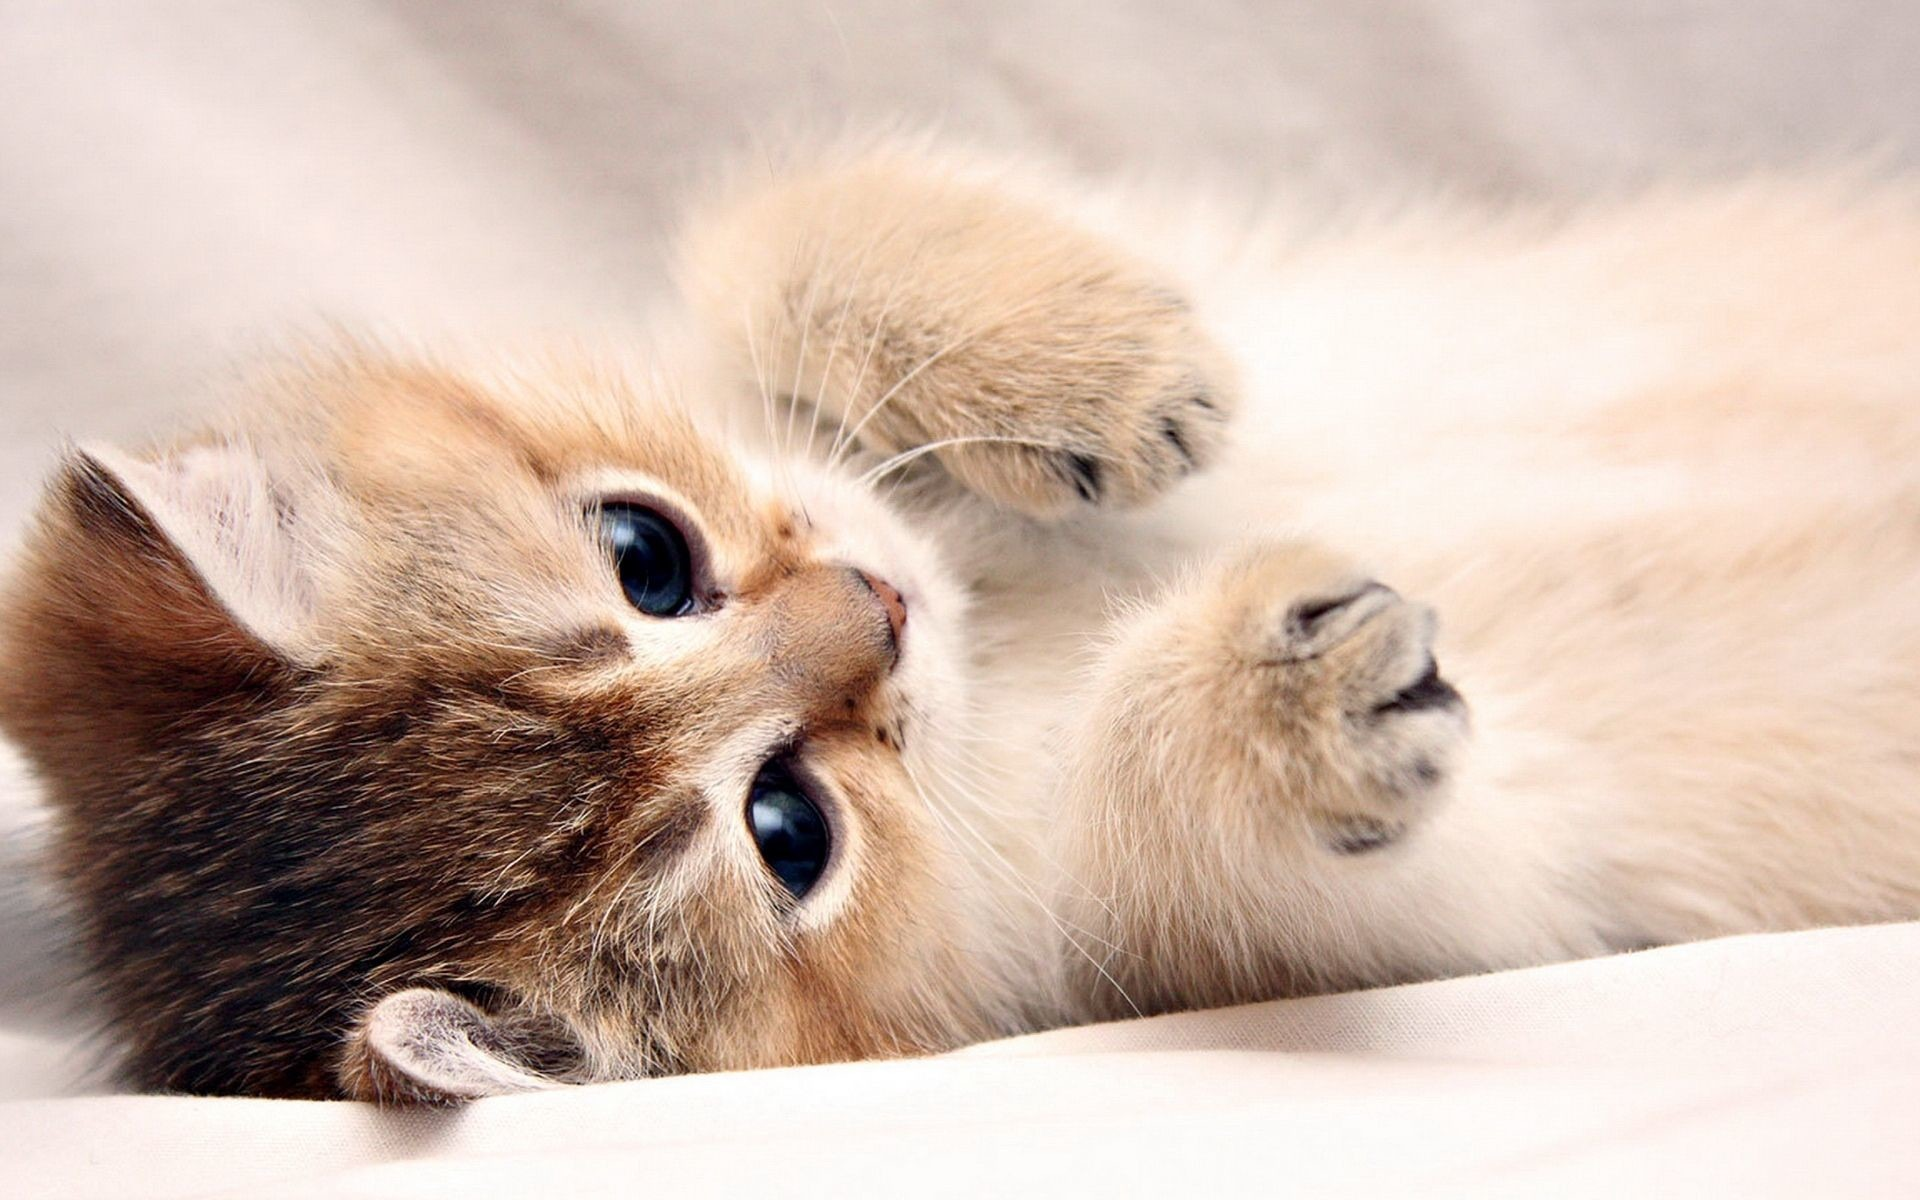 20 Super Adorable Cat Pictures That Will Make You Happy 1533466463